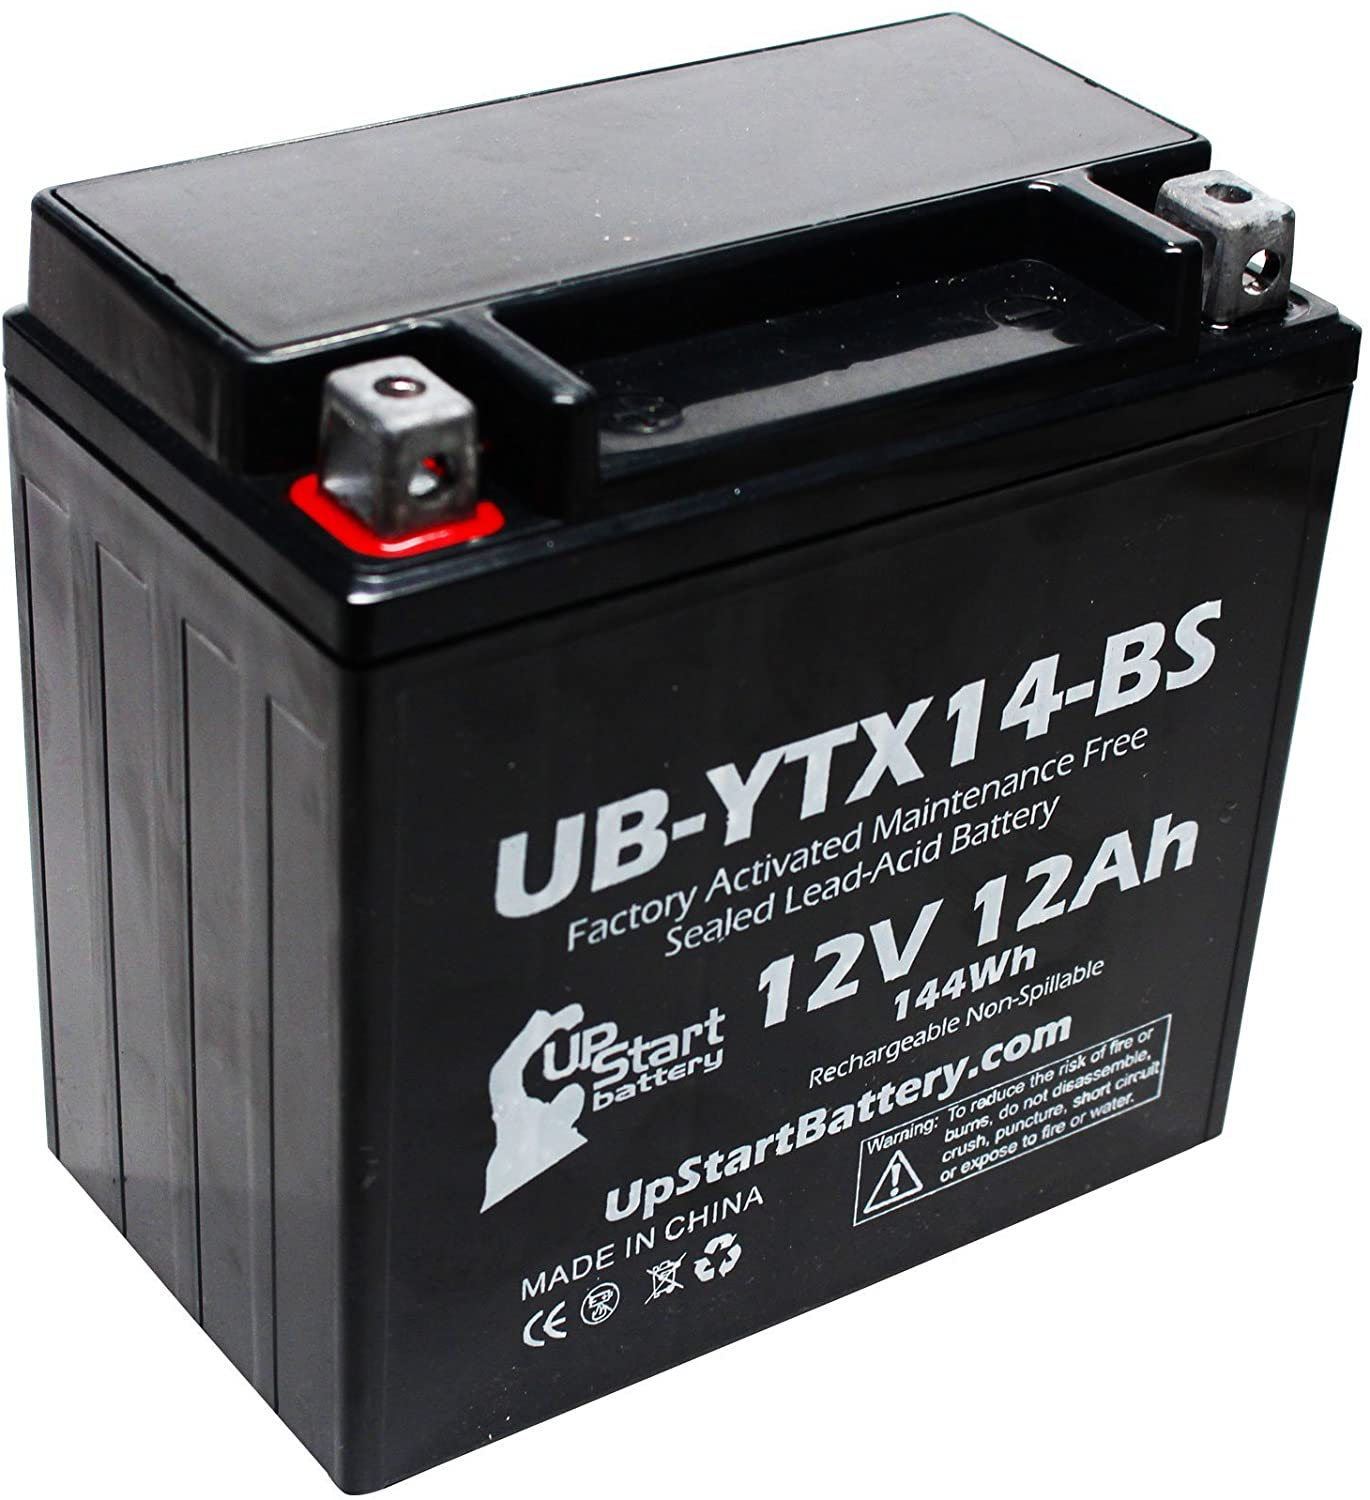 Replacement for 2004 Honda TRX400 Rancher AT 400 CC Factory Activated, Maintenance Free, ATV Battery - 12V, 12AH, UB-YTX14-BS